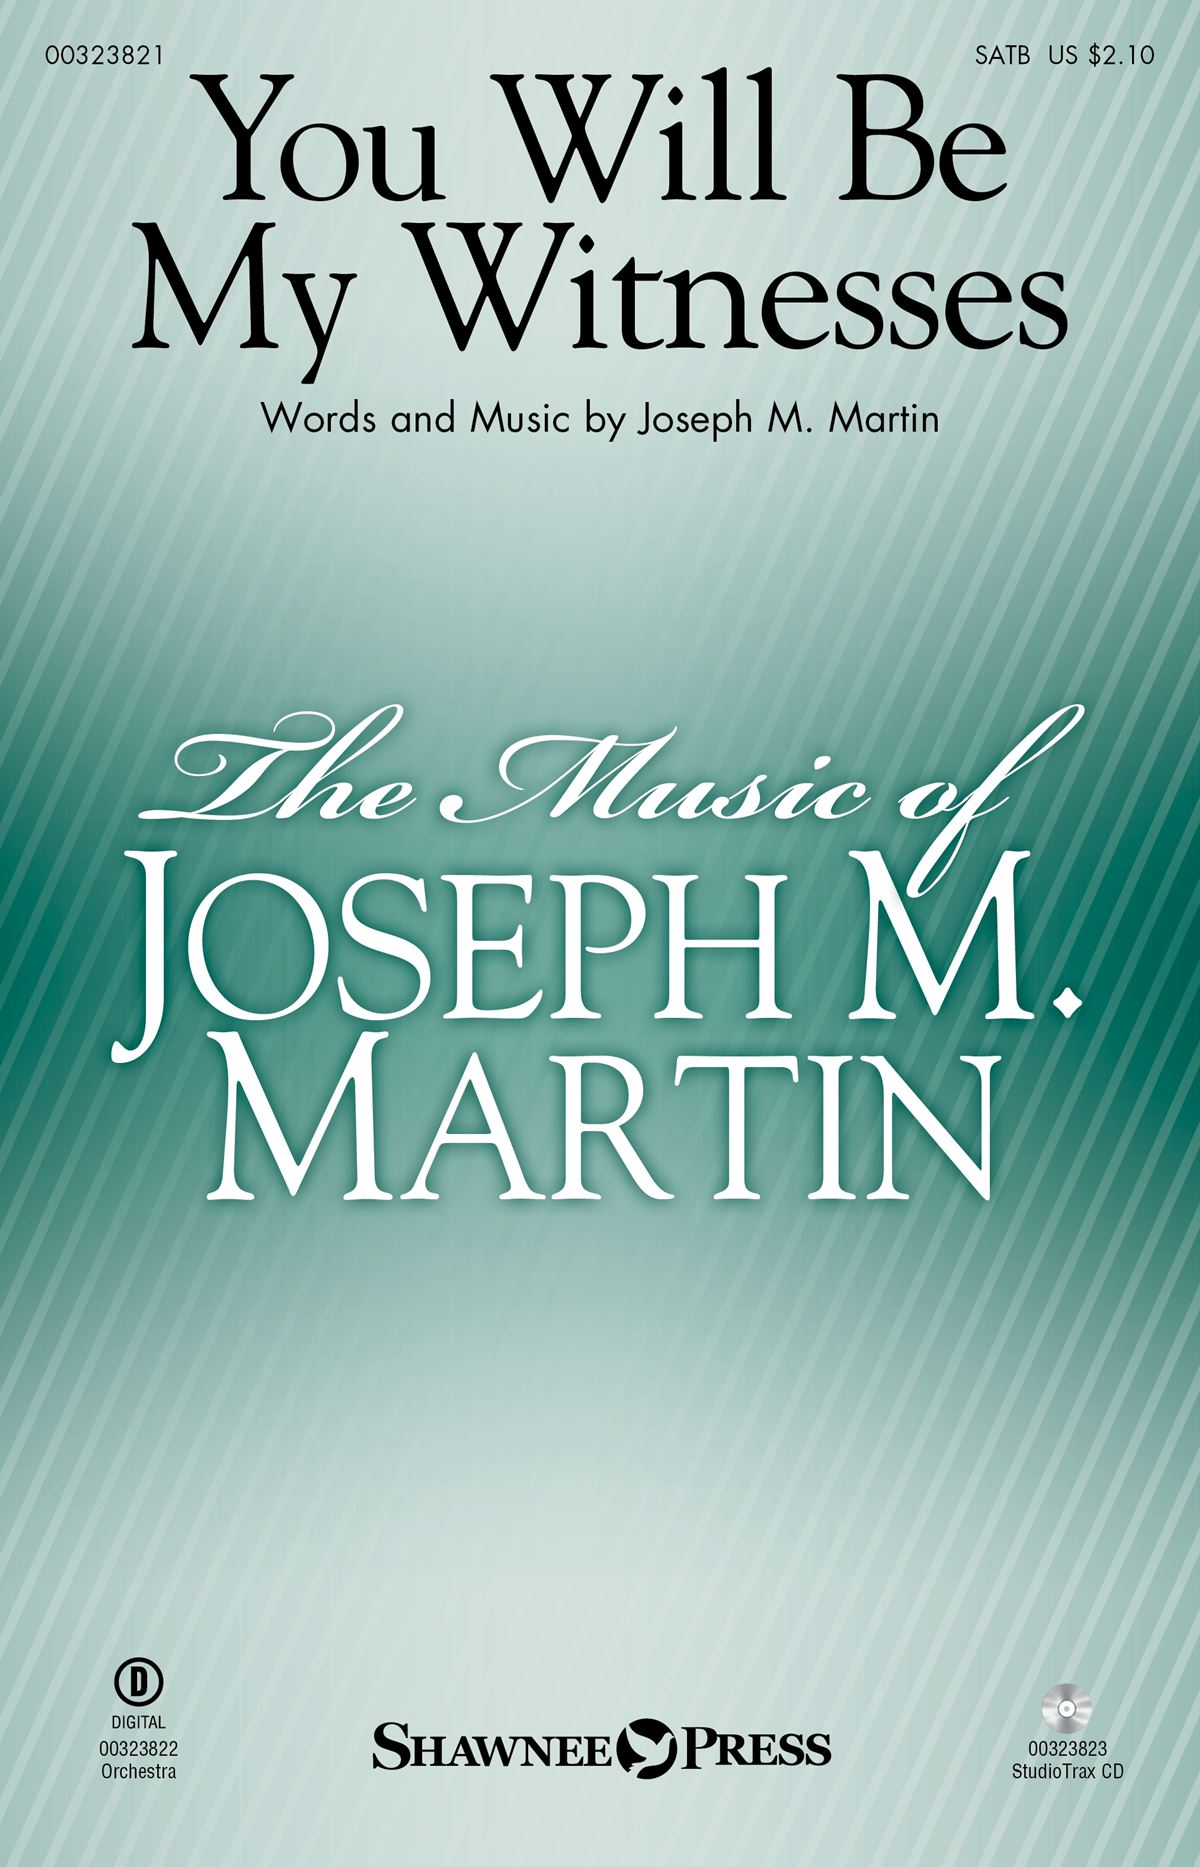 Joseph M. Martin: You Will Be My Witnesses: Mixed Choir a Cappella: Vocal Score